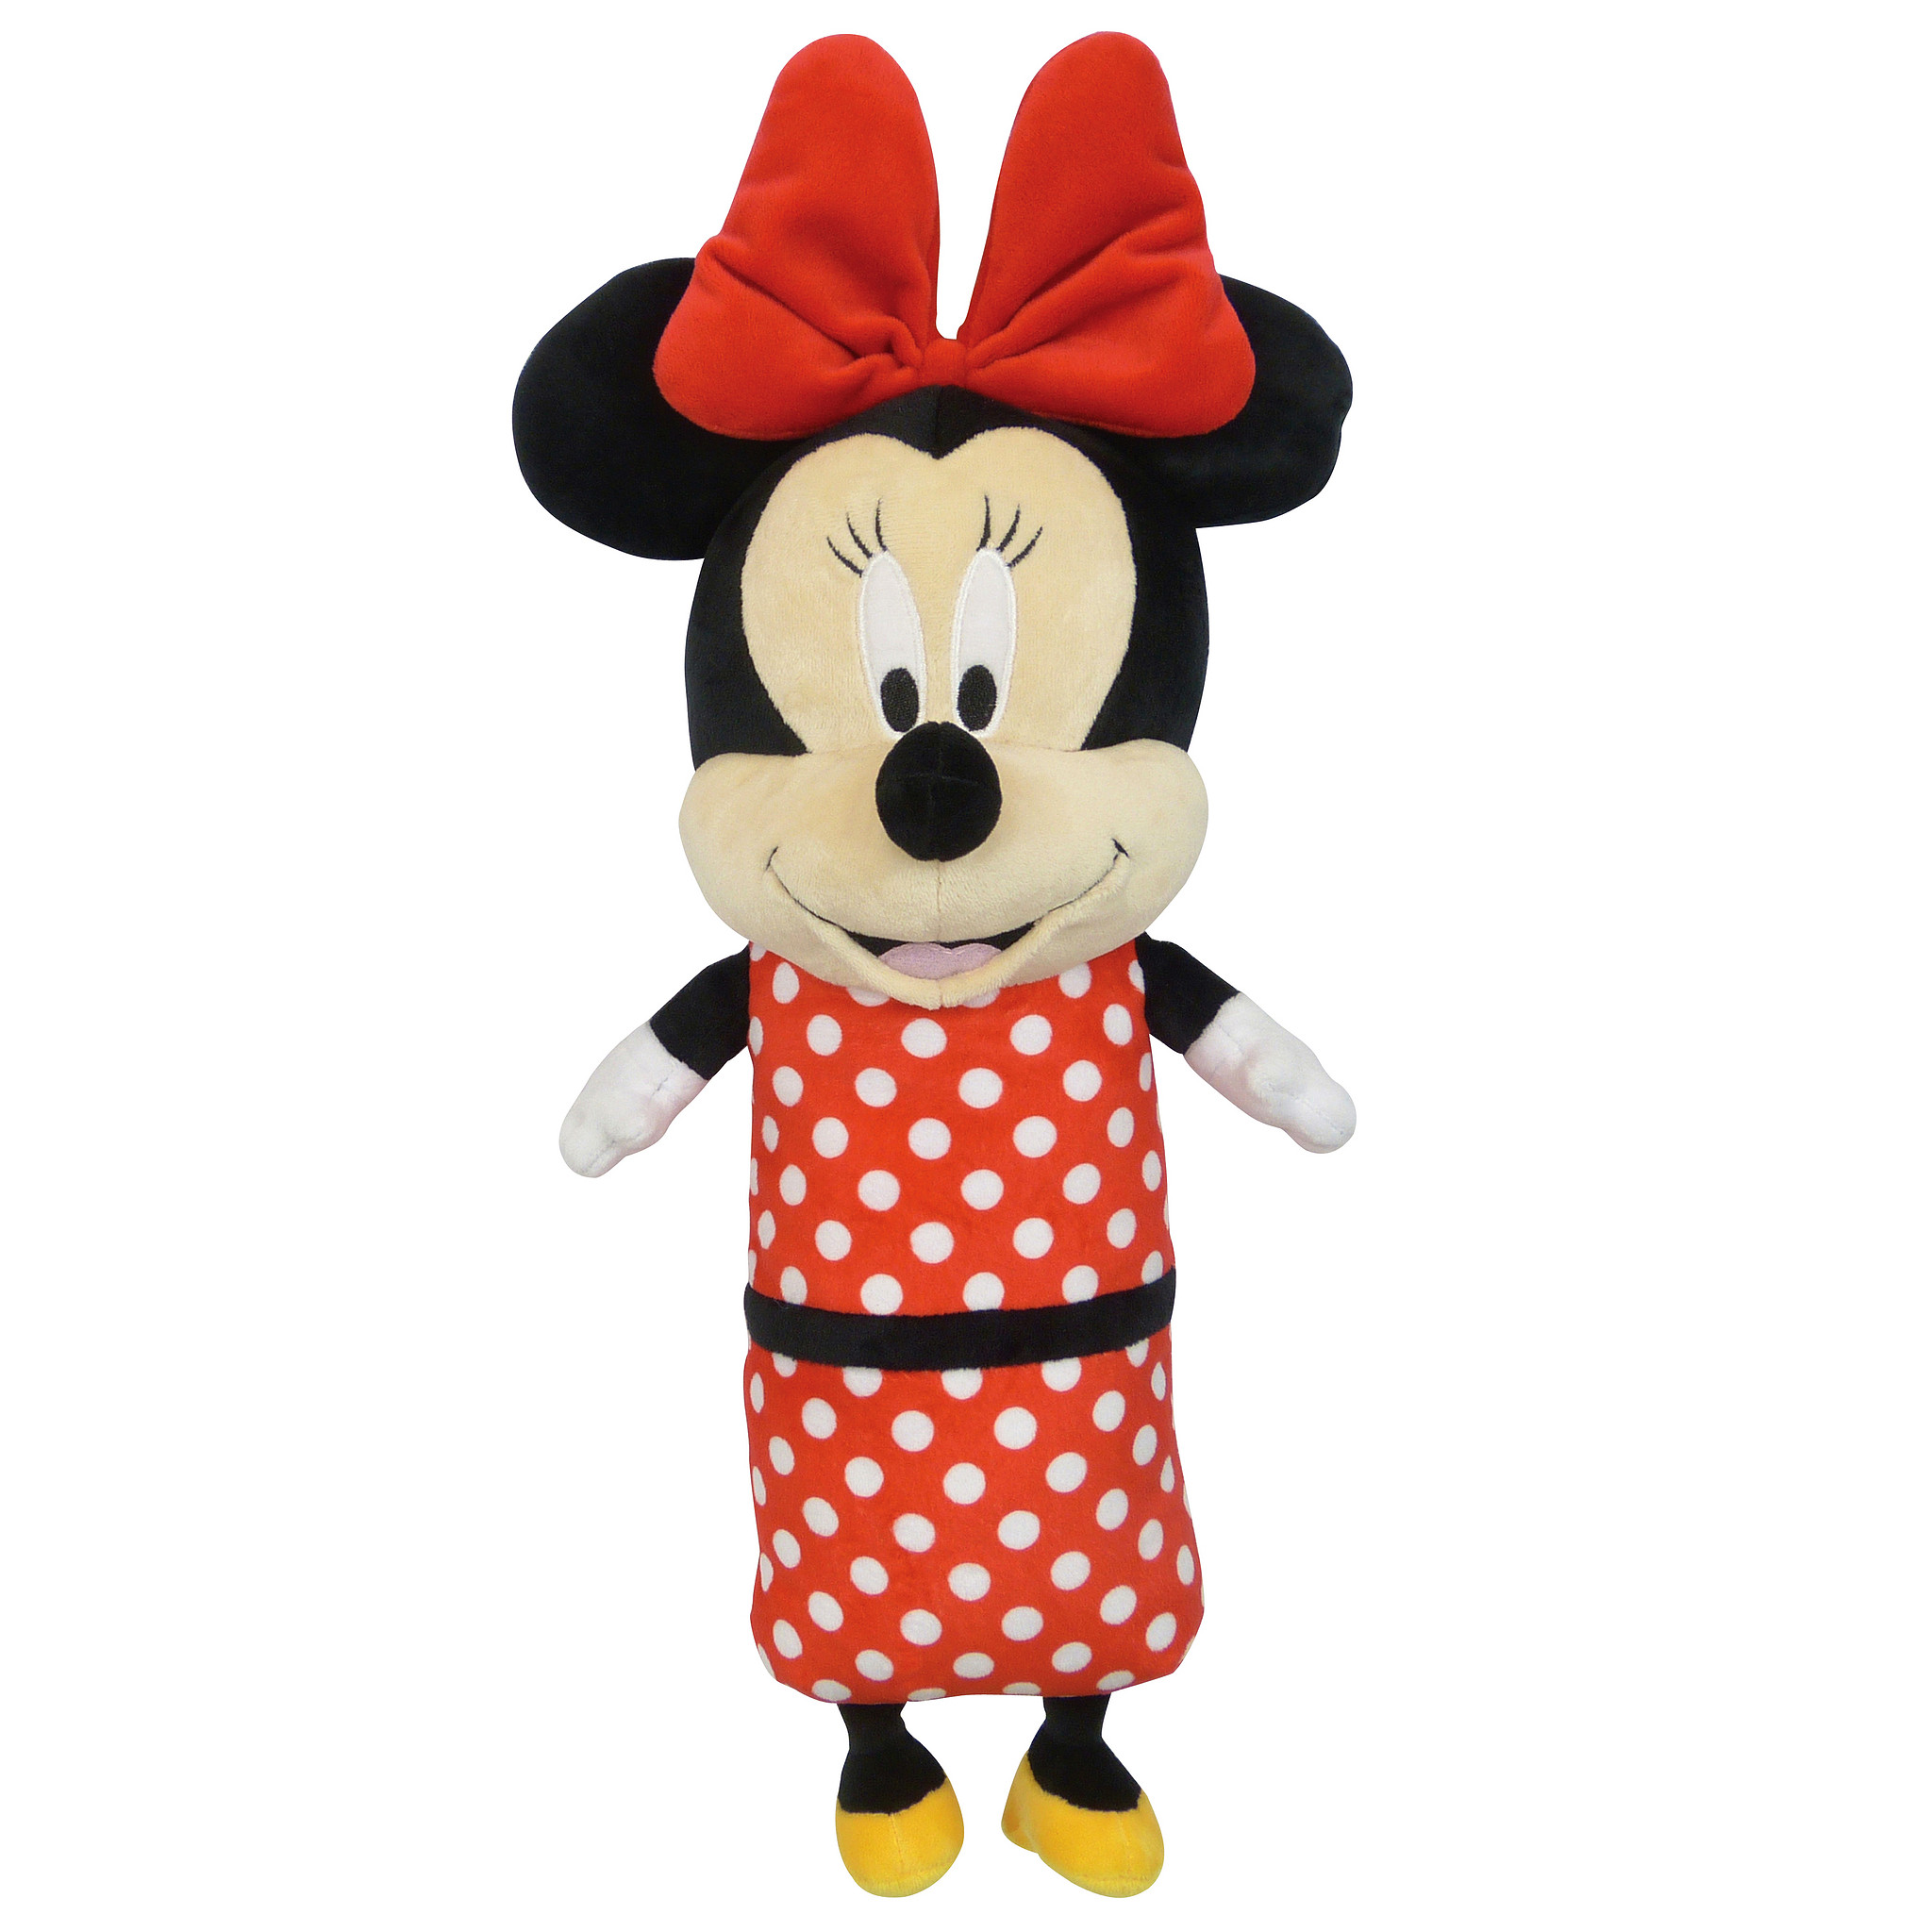 Disney 3D Gordelkussen Minnie